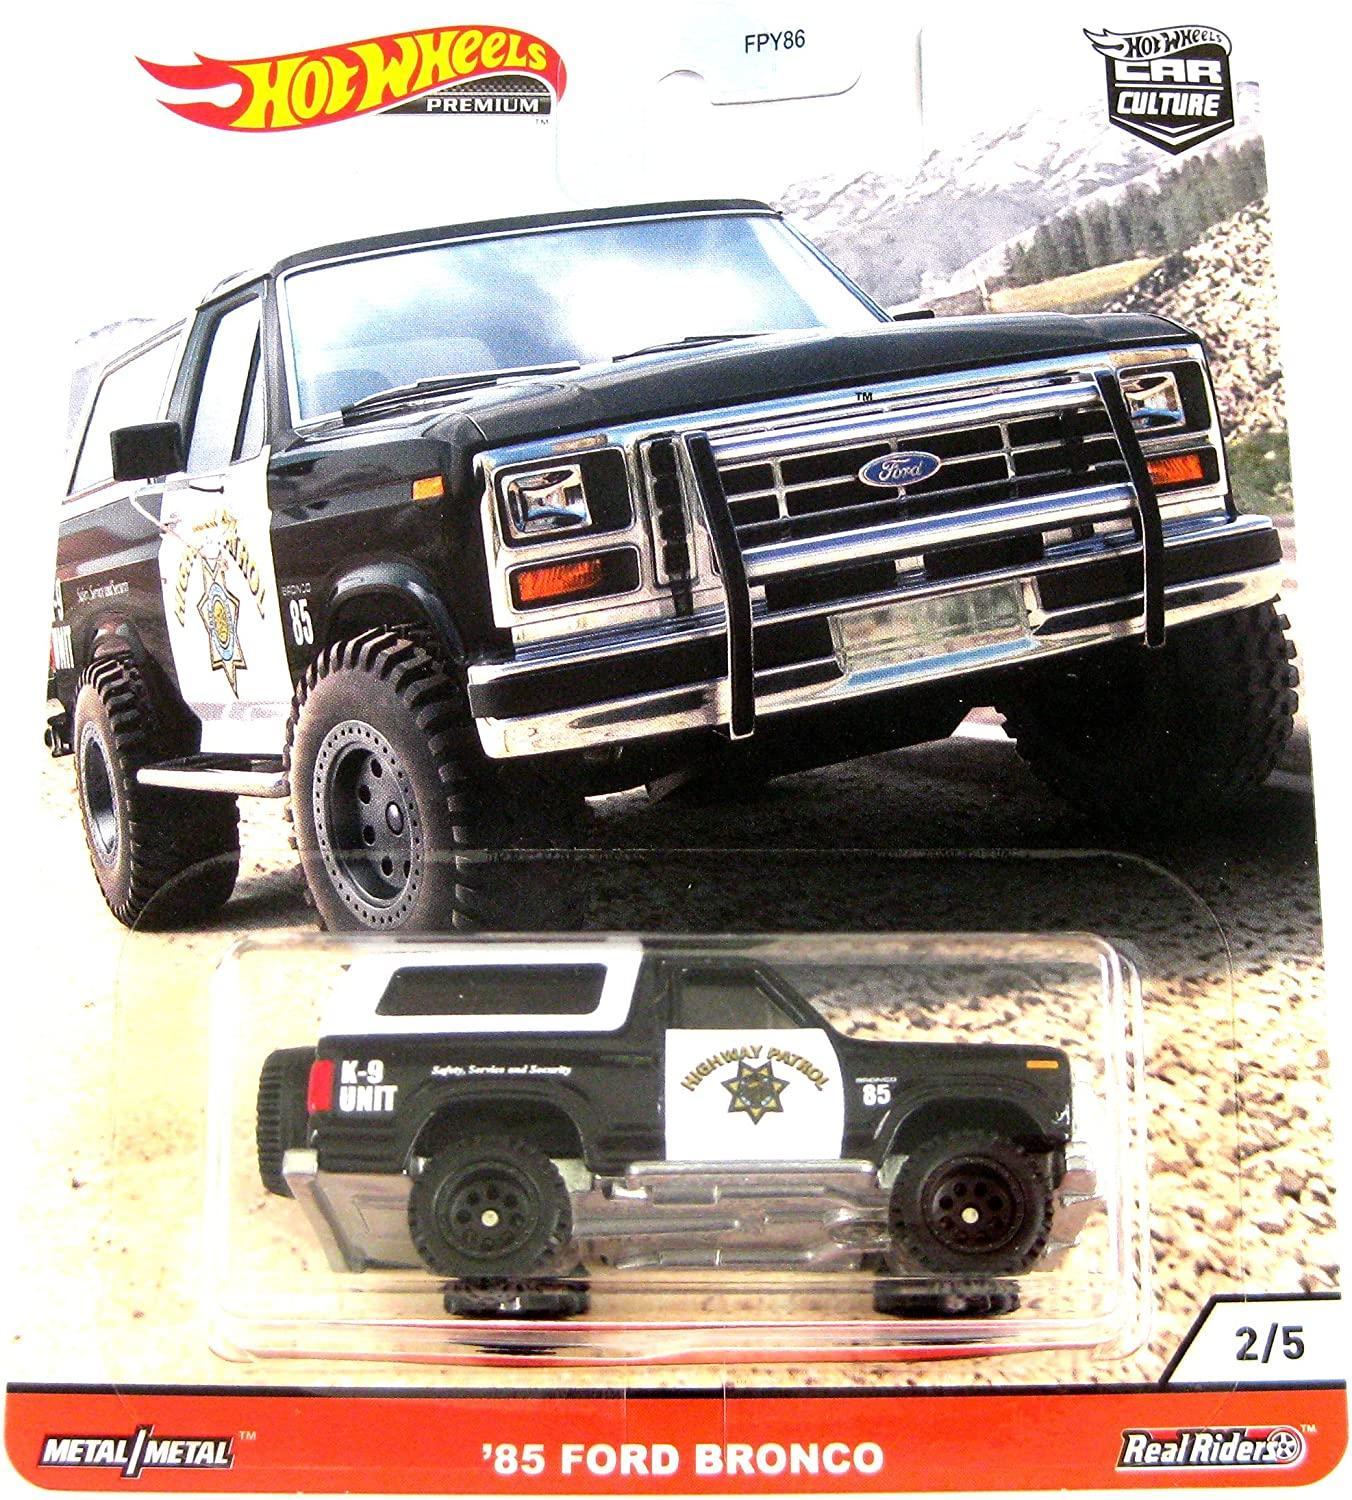 Hot Wheels Car Culture Wild Terrain Real Riders Ford Bronco (1985) (GJP88/FPY86)